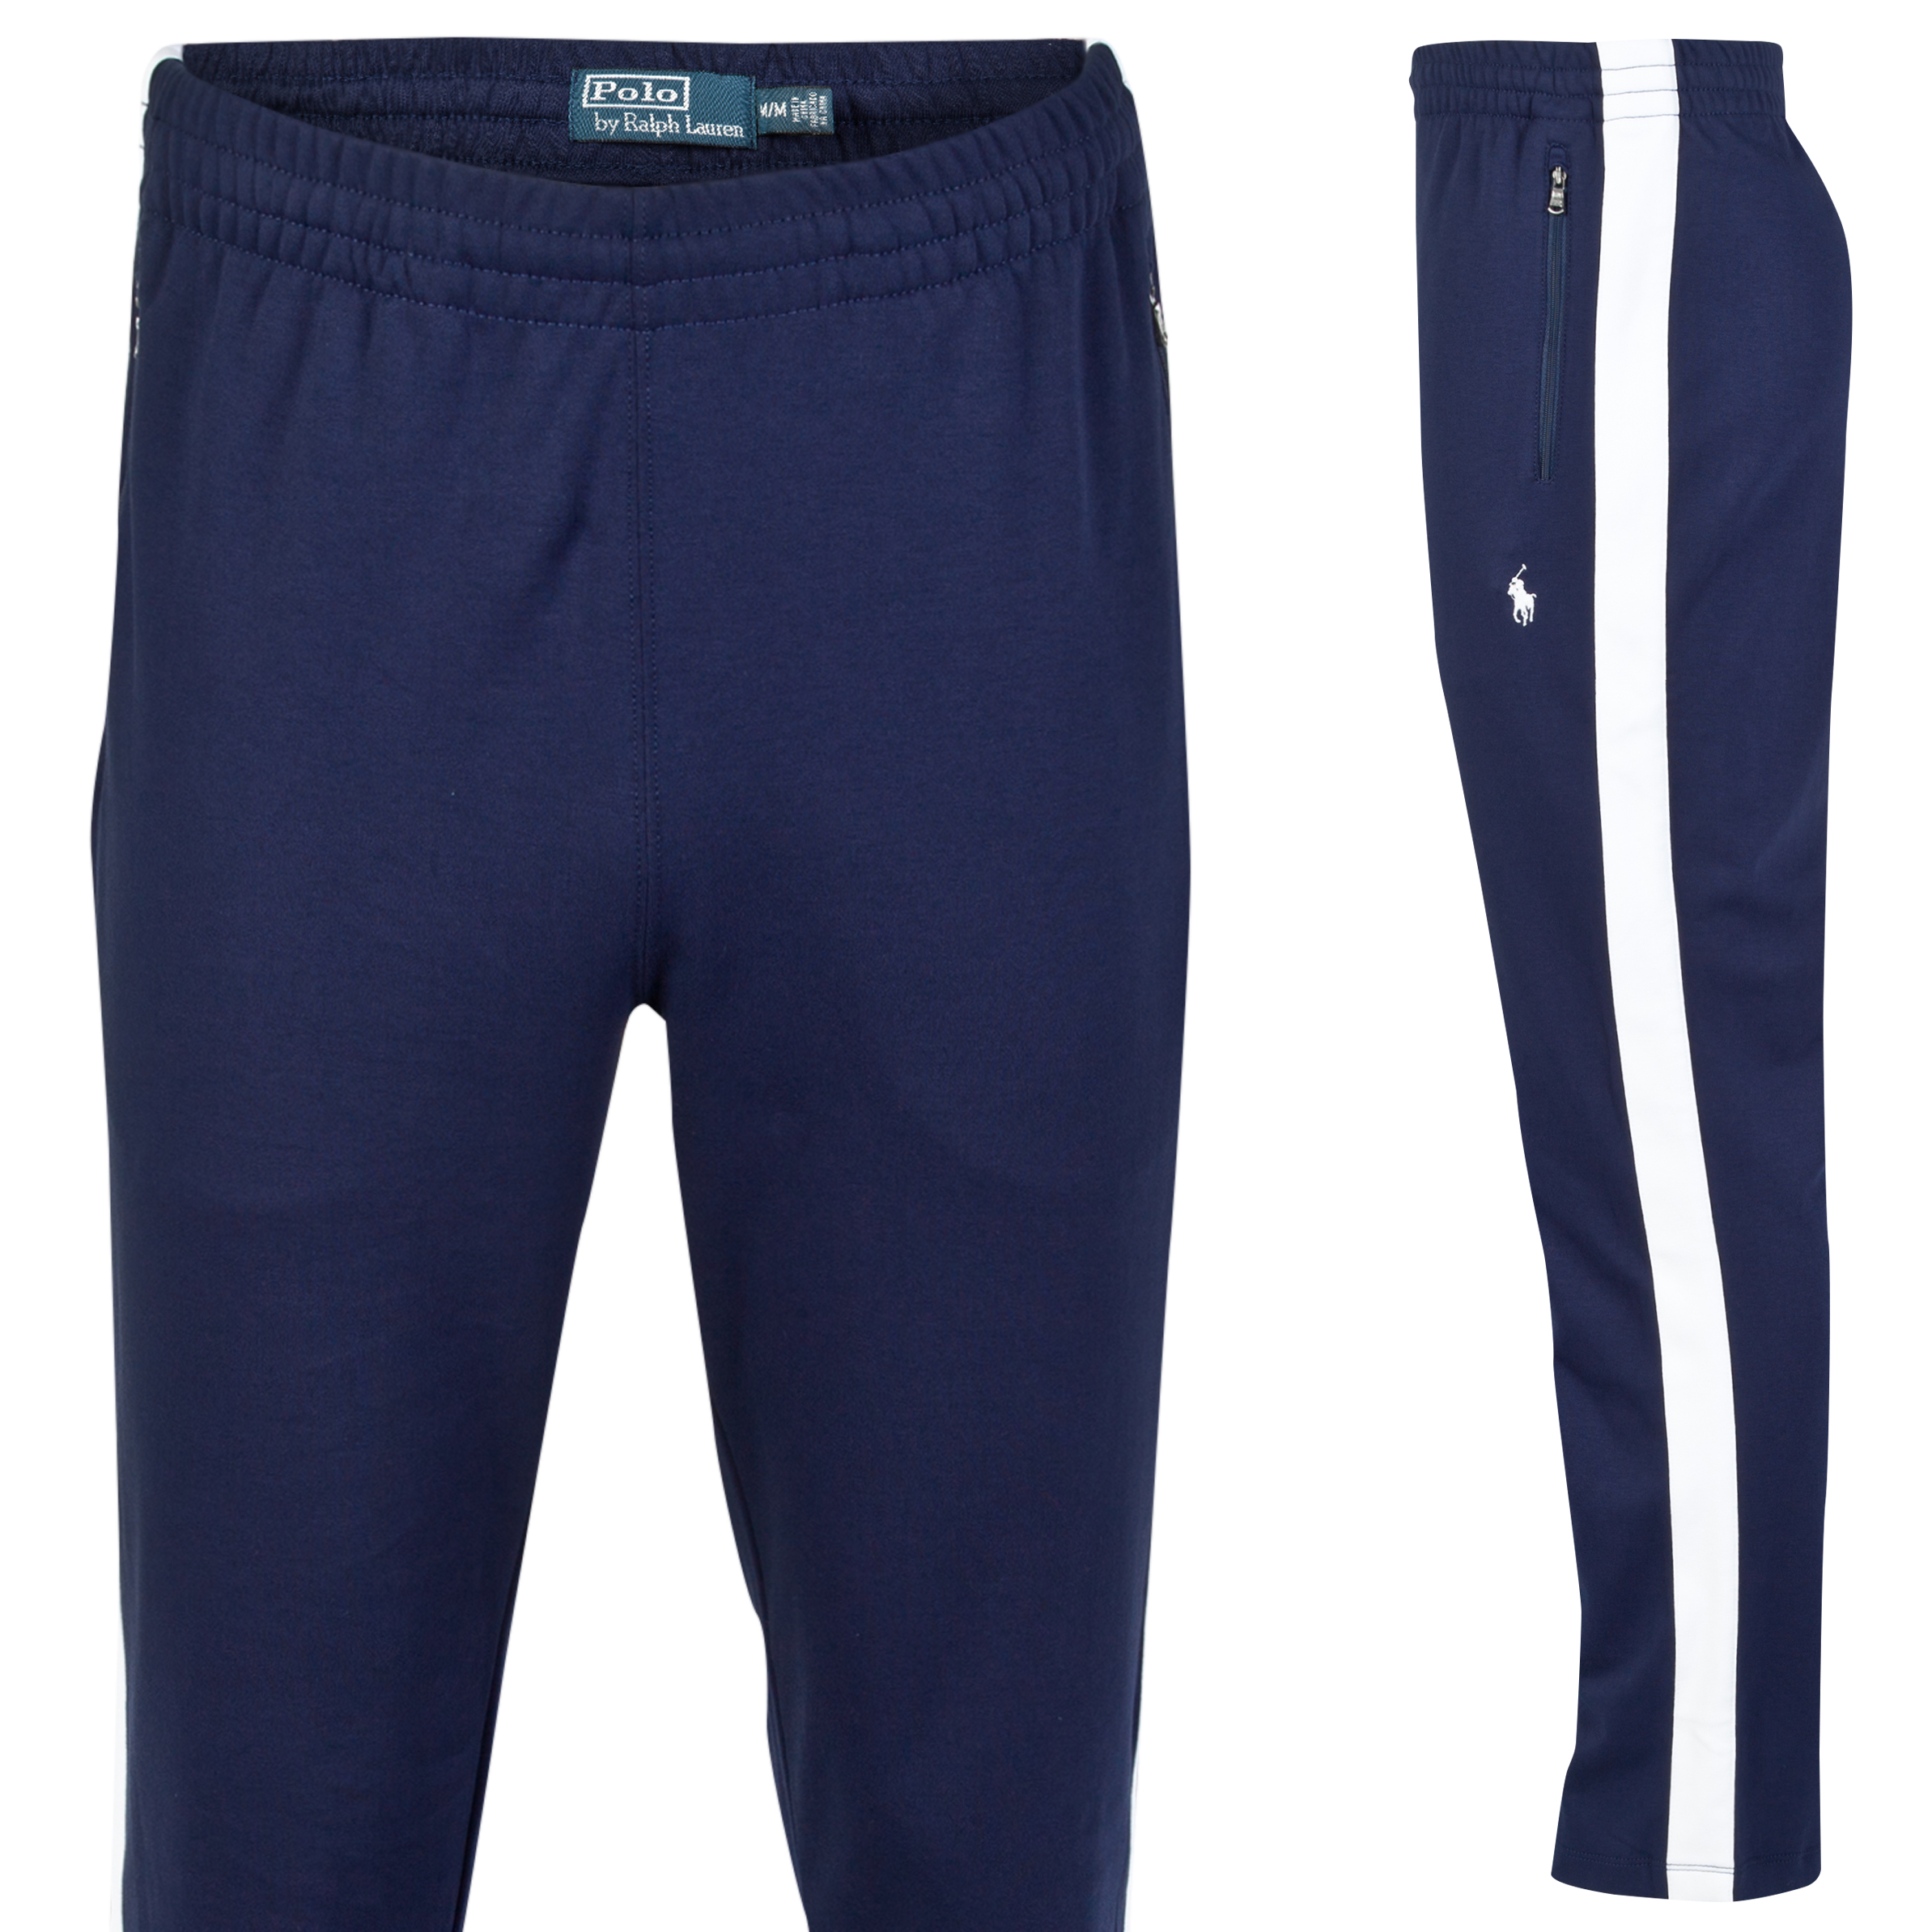 Wimbledon Polo Ralph Lauren Track Pant - French Navy